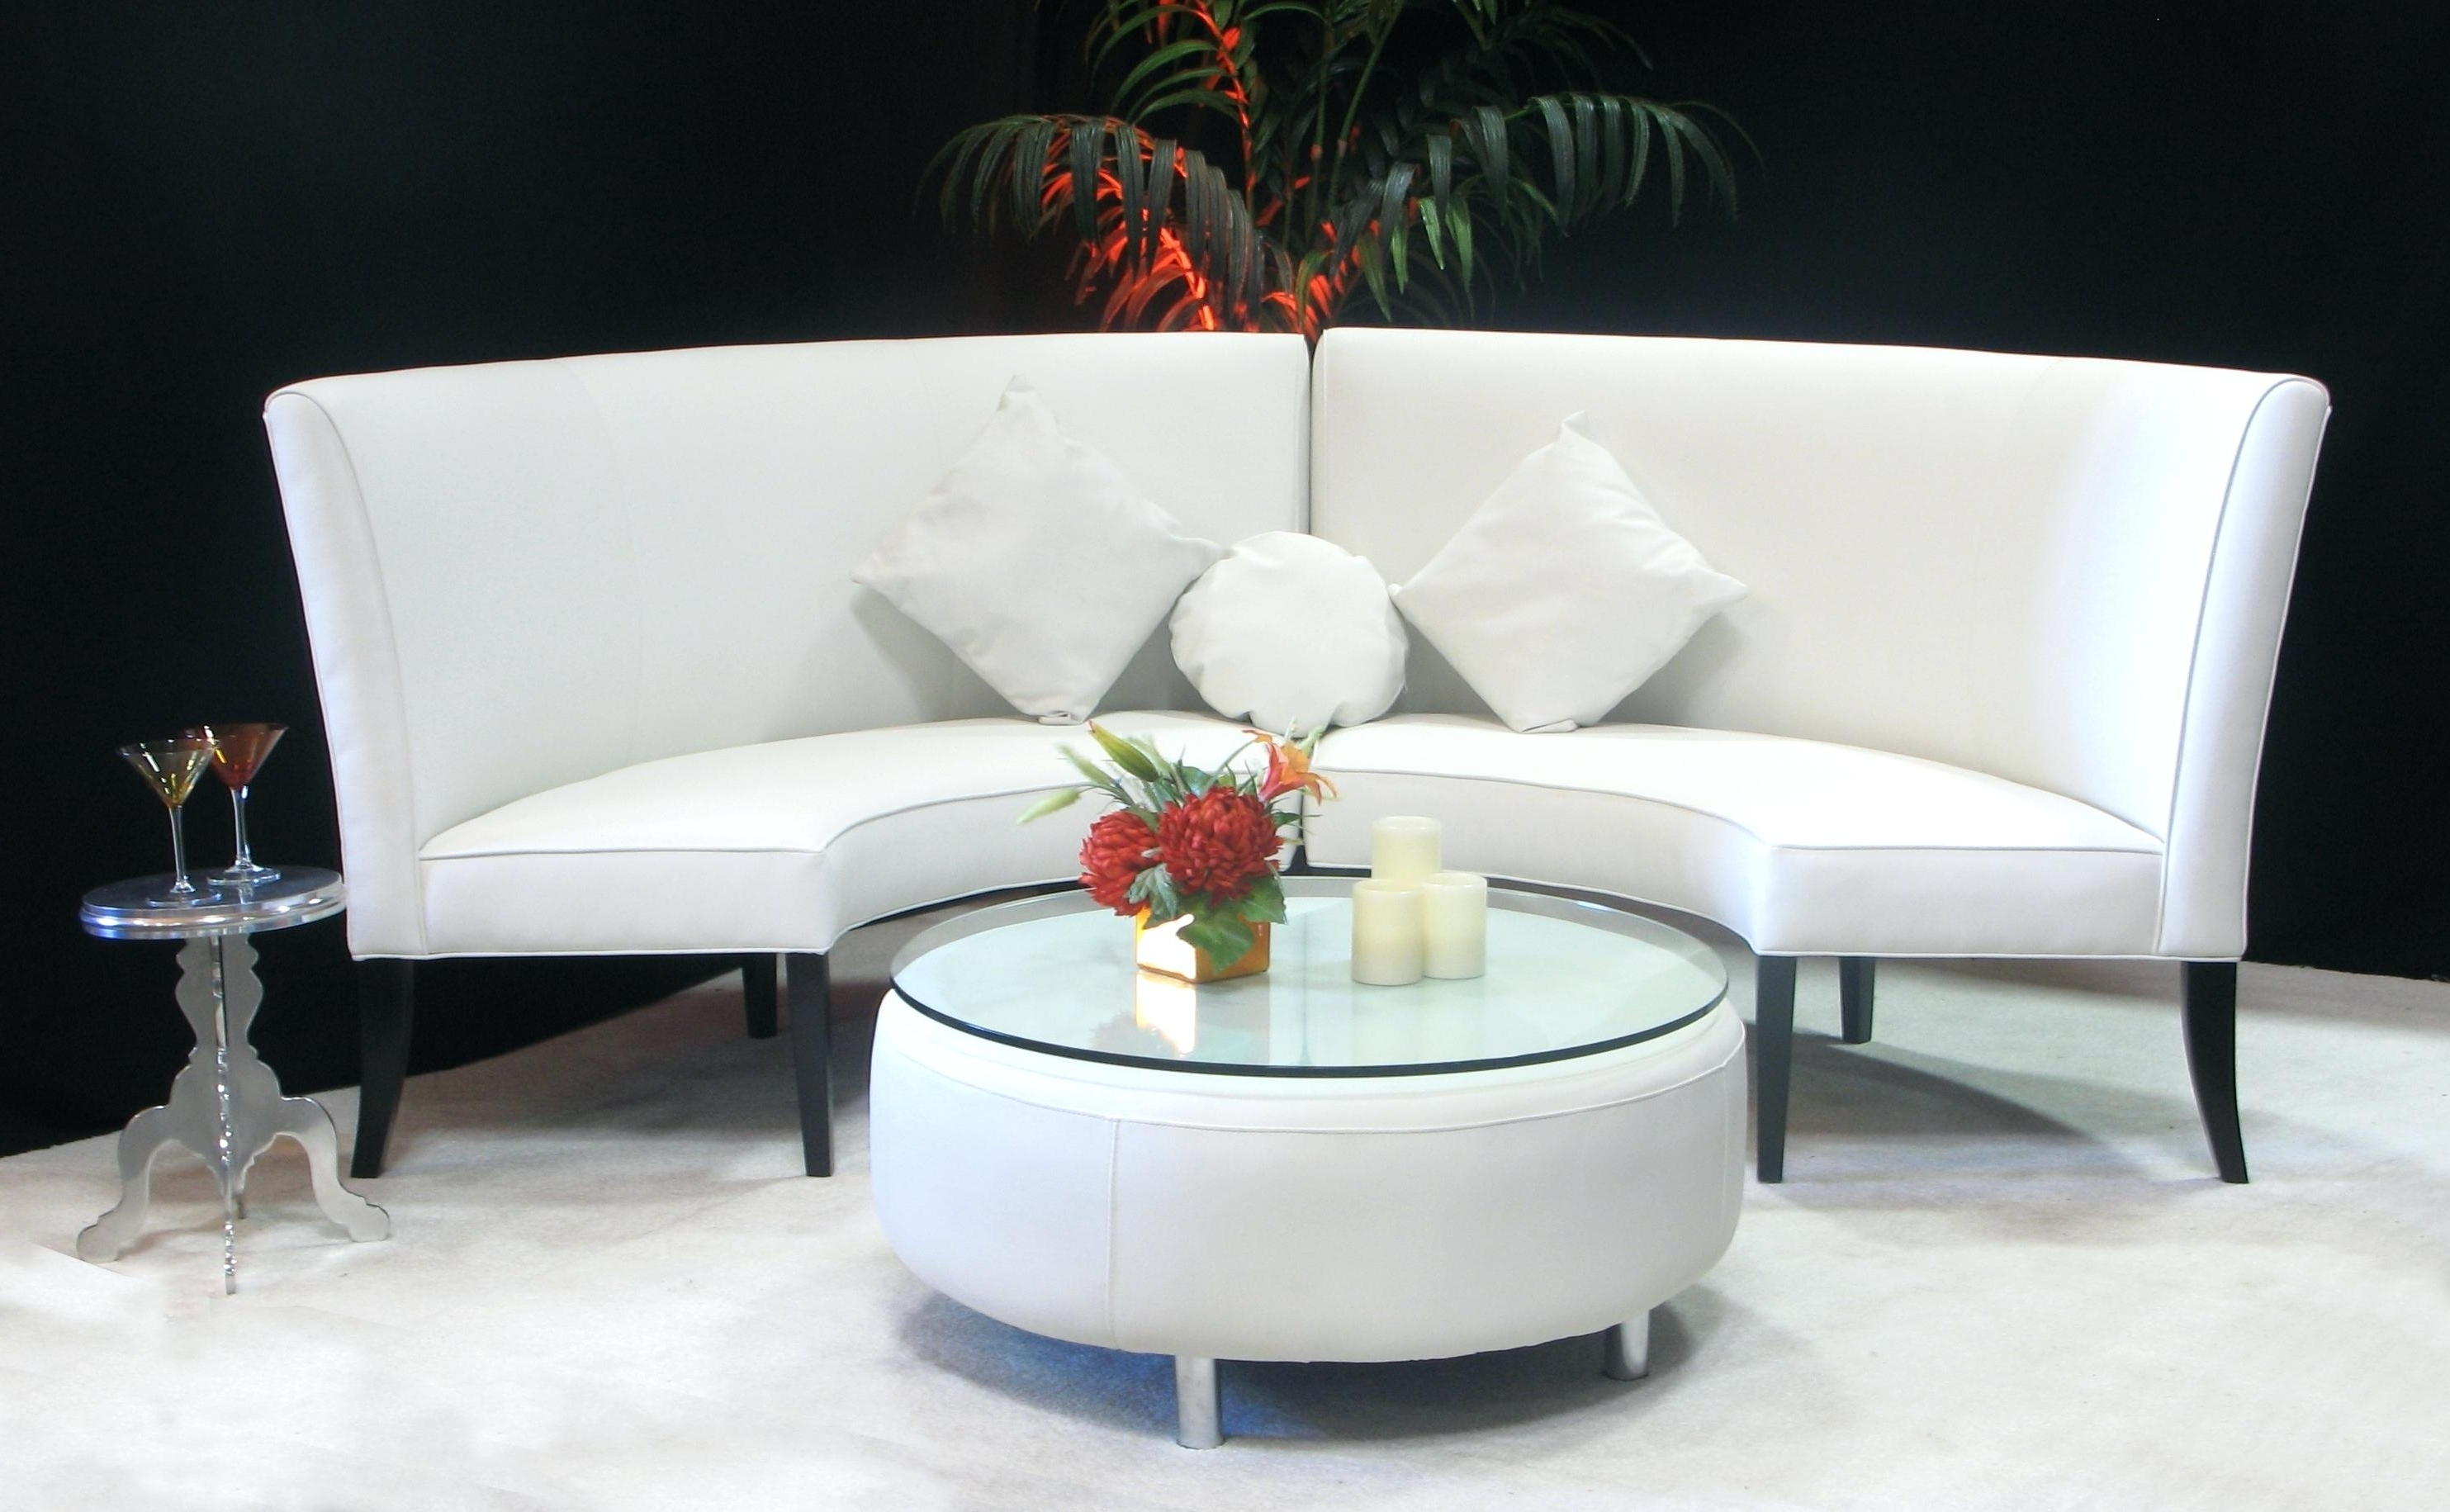 Rounded Sofas With Recent Rounded Sofa Maze Rattan Set Round Chair Canada – Kattenbroek (View 6 of 15)